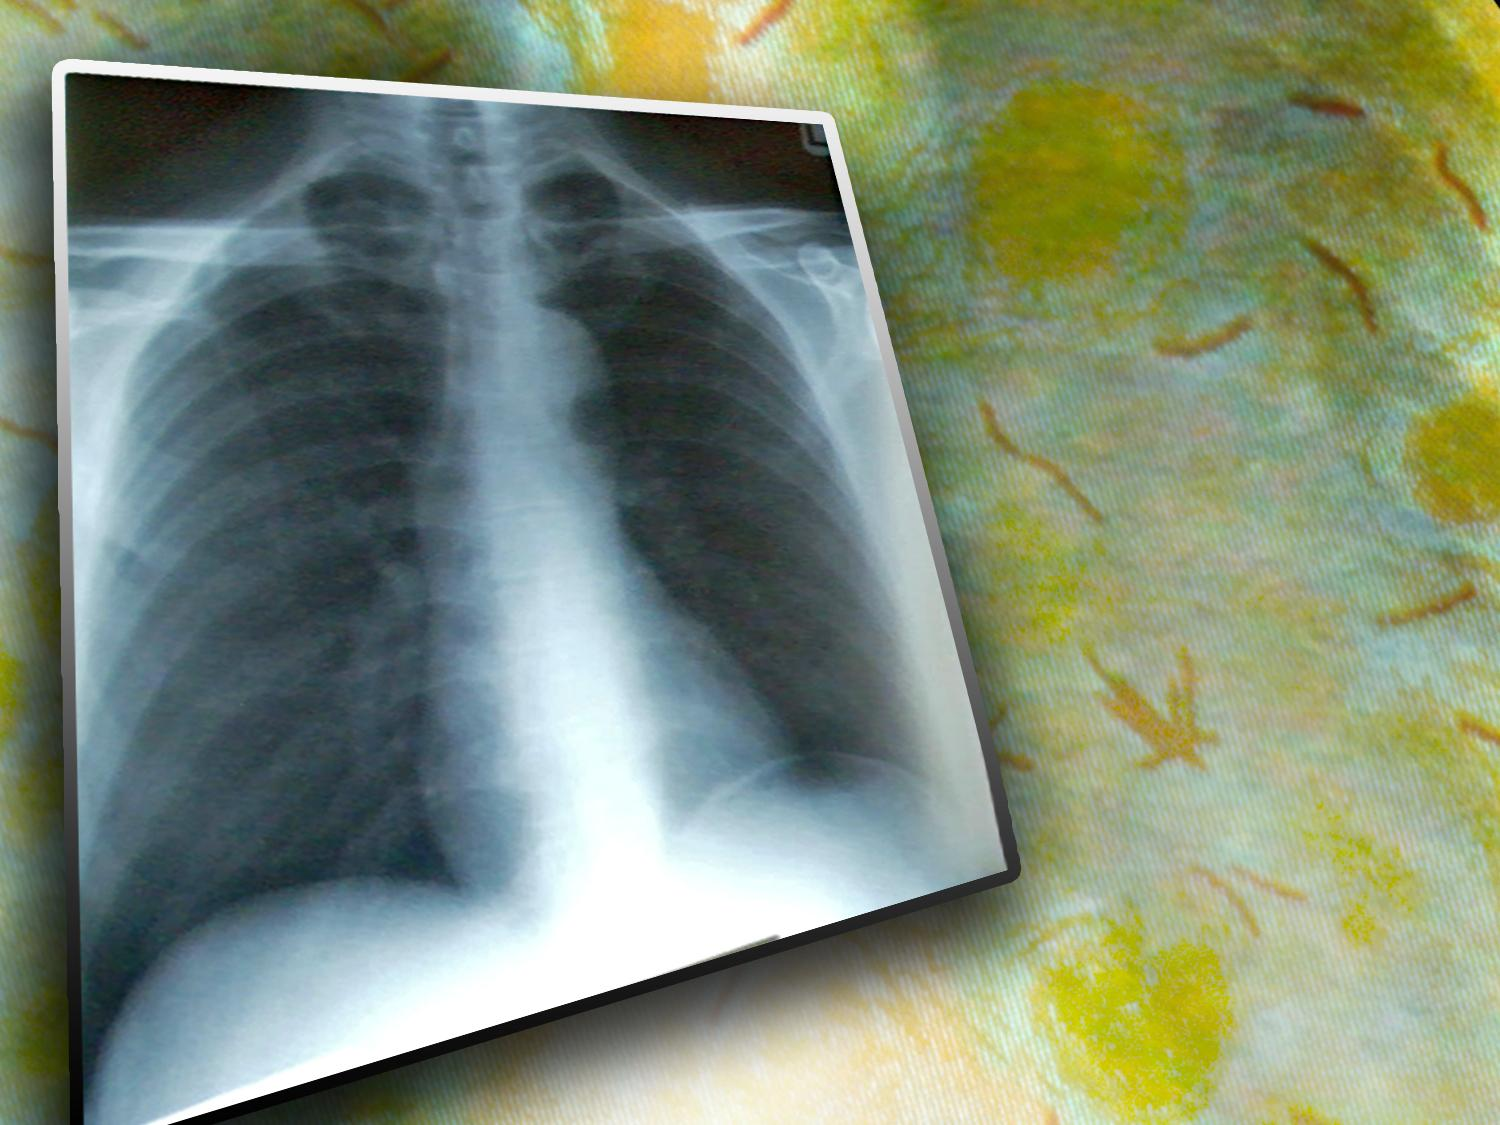 Tuberculosis chest x-ray_122386